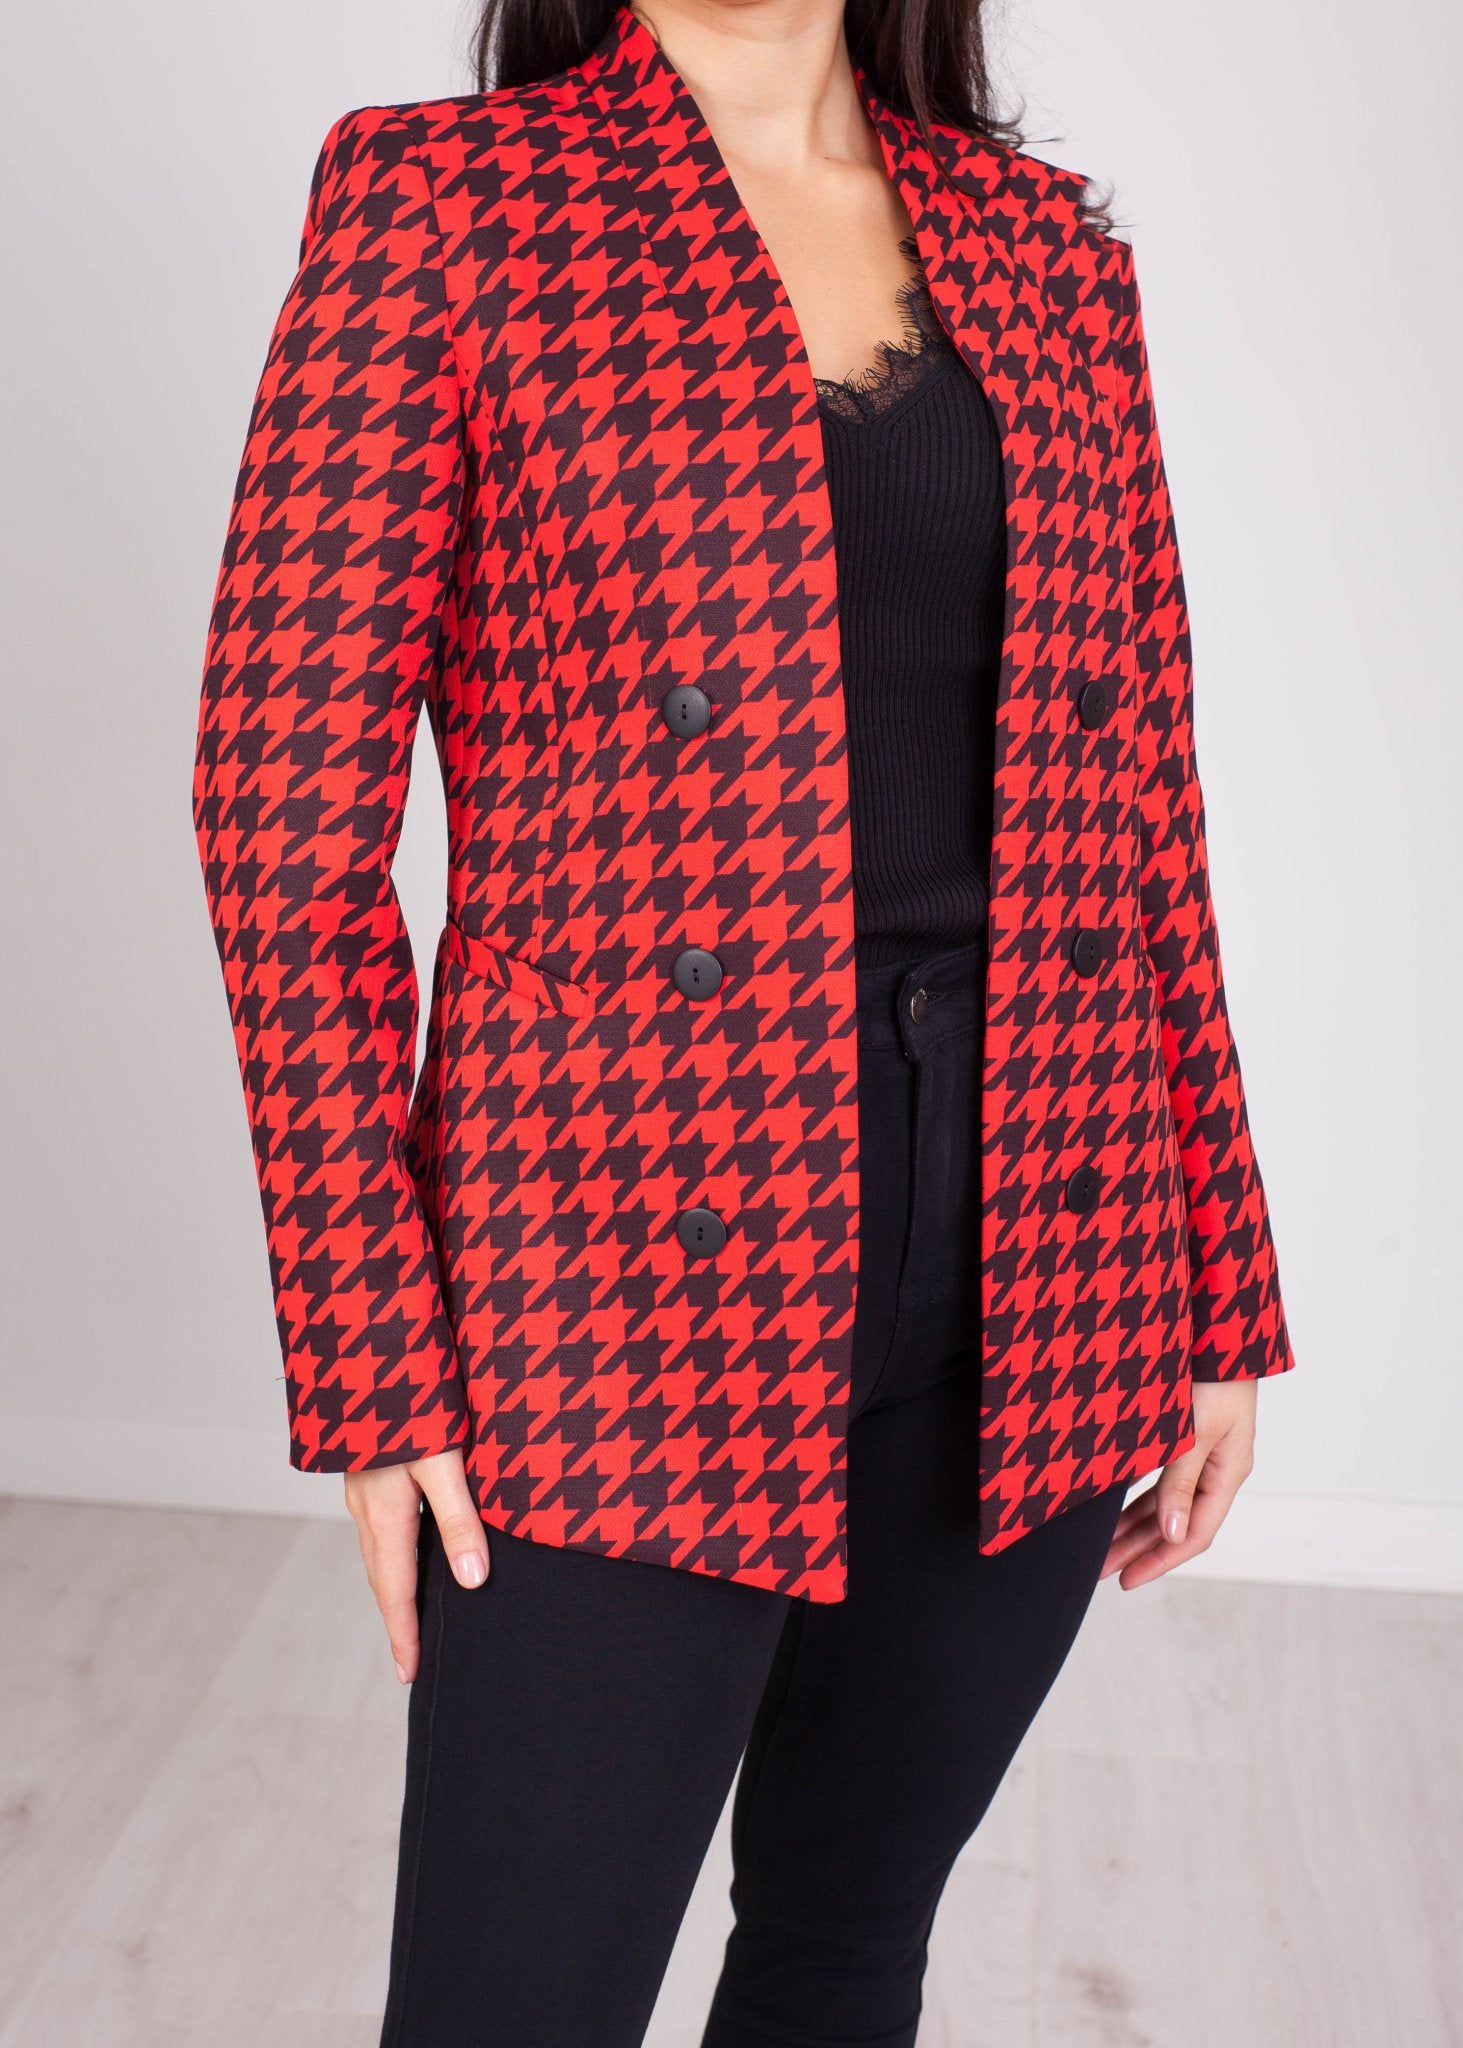 Charlee Red & Black Houndstooth Blazer - The Walk in Wardrobe